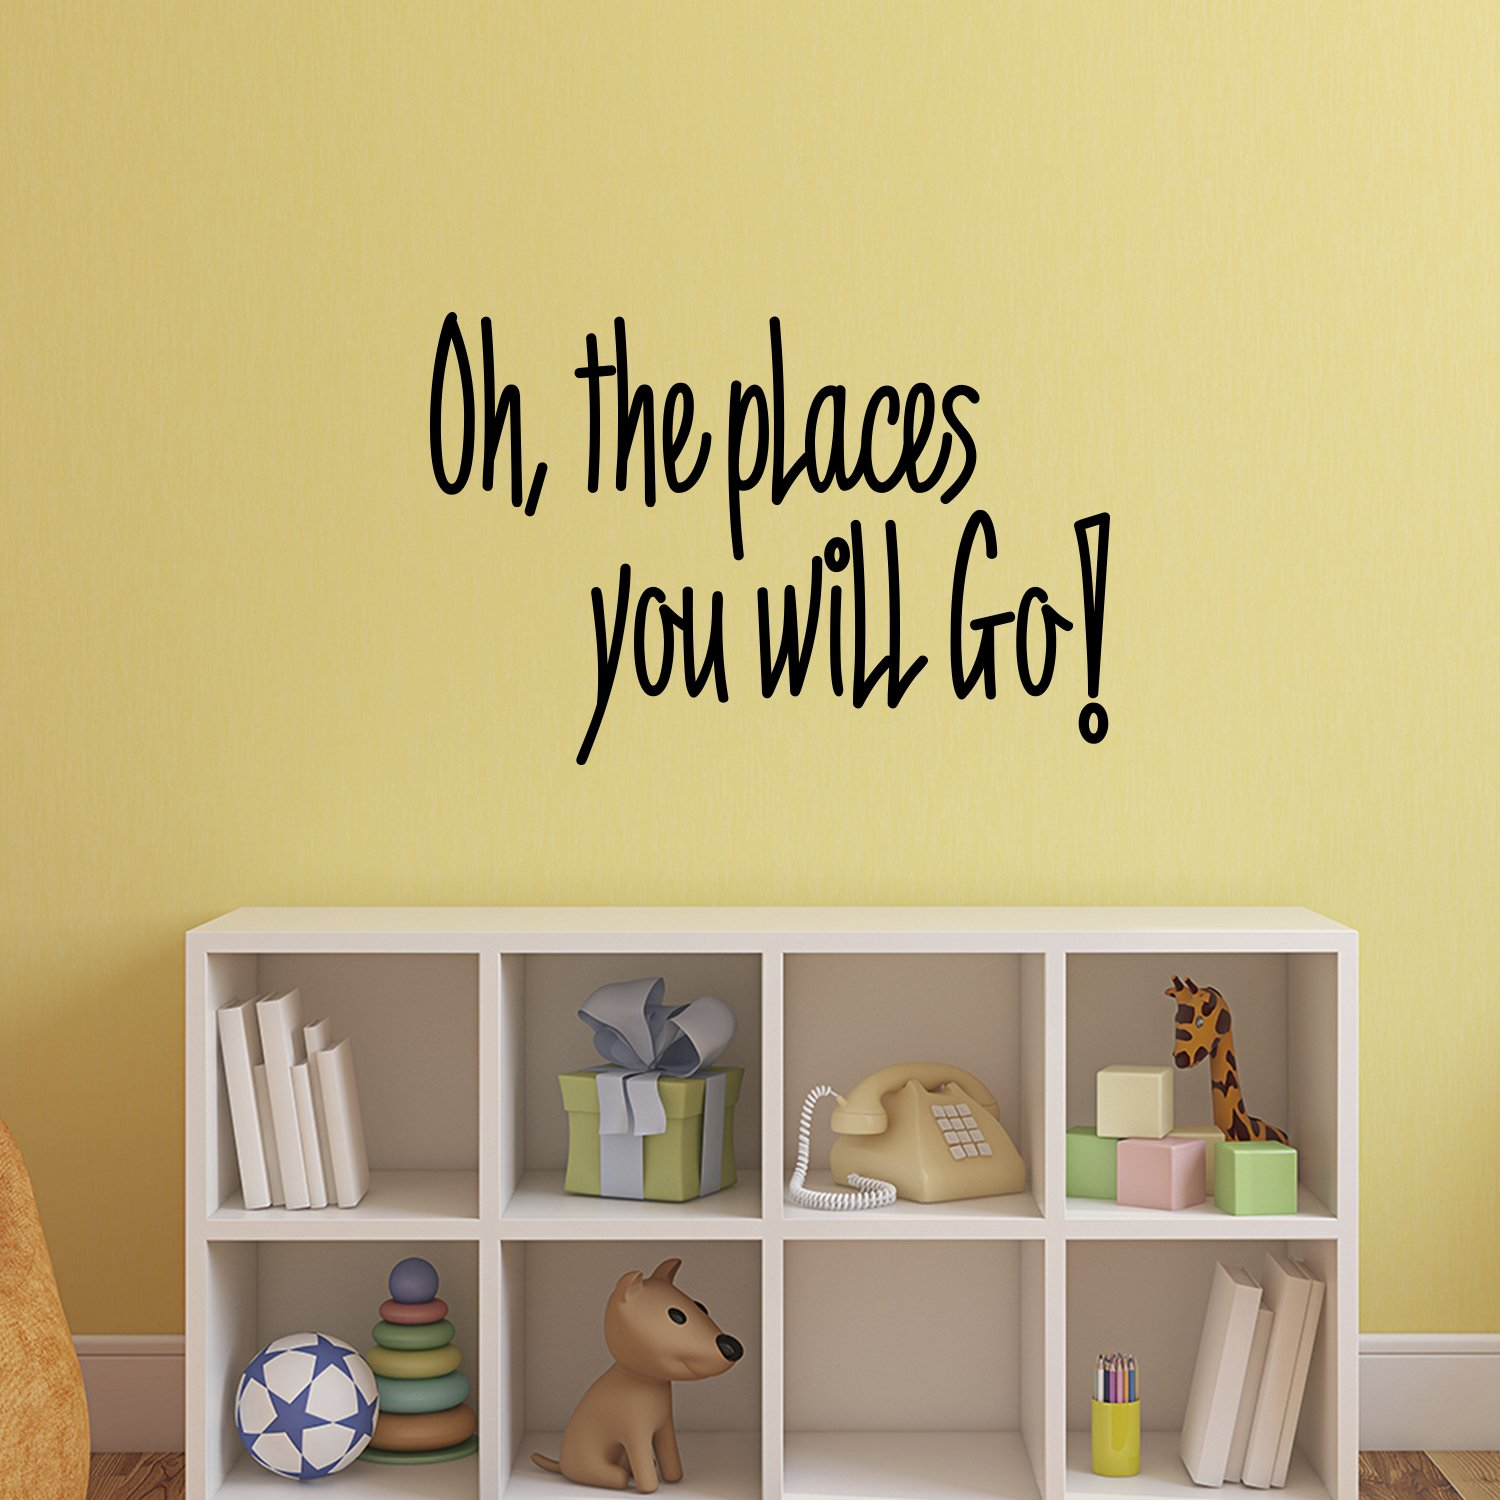 Amazon.com: Oh, The Places You Will Go! - Dr. Seuss Quotes - Vinyl ...